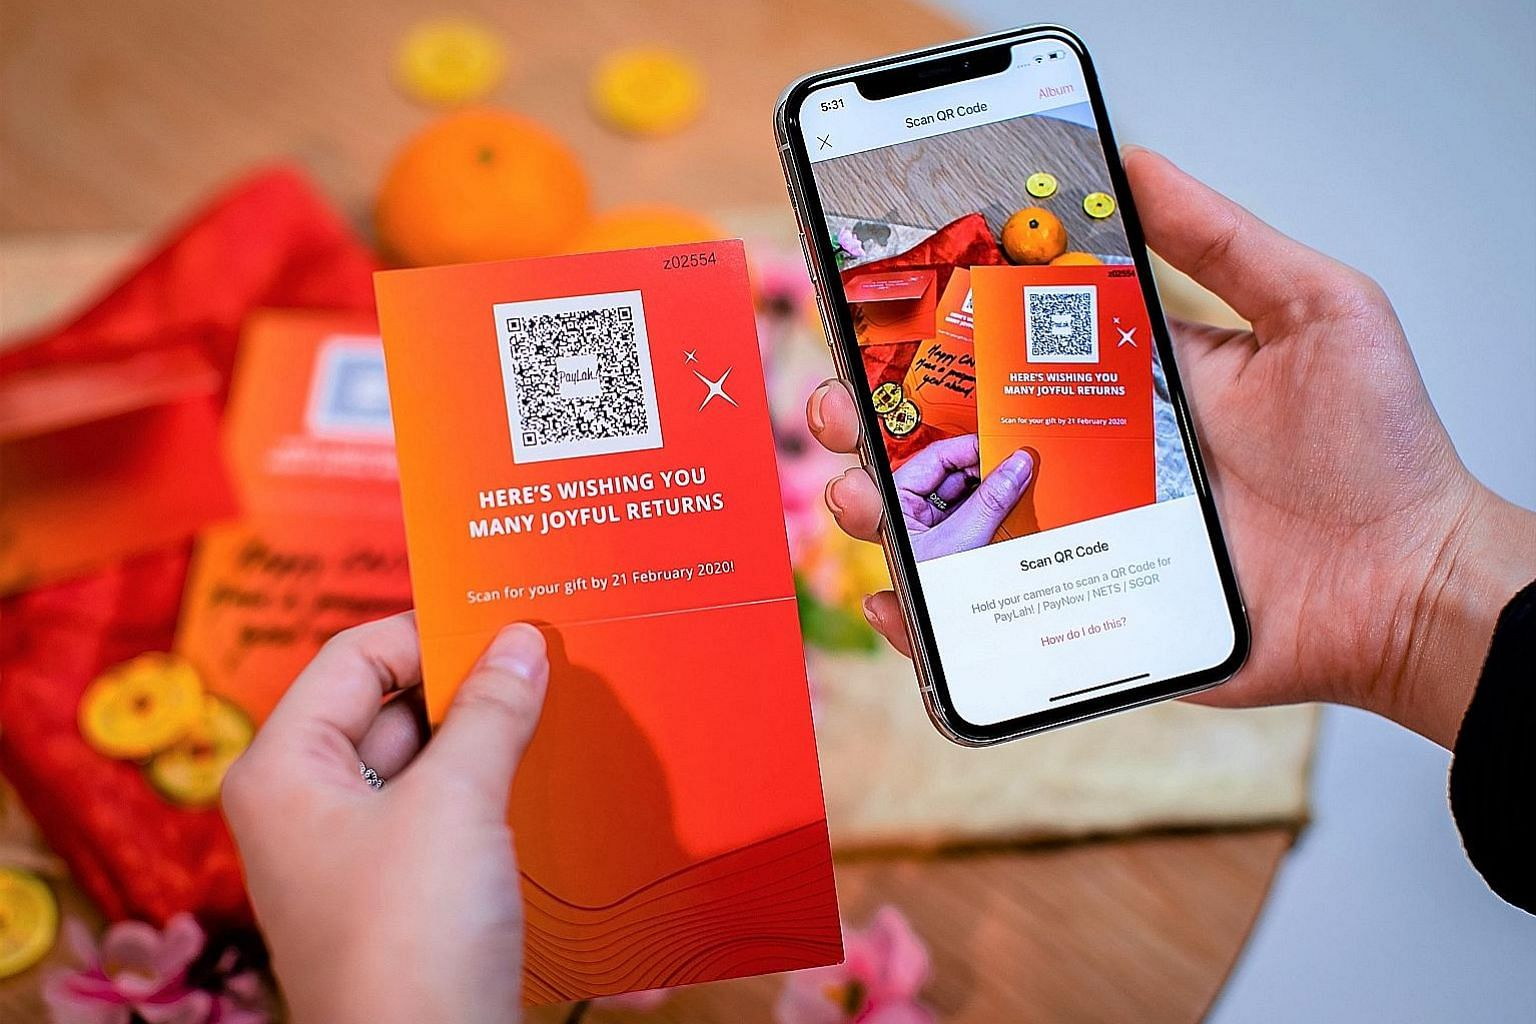 DBS QR Gift allows DBS PayLah! users to scan a QR code to load a cash value into gift cards. Recipients have to be PayLah! or PayNow users.